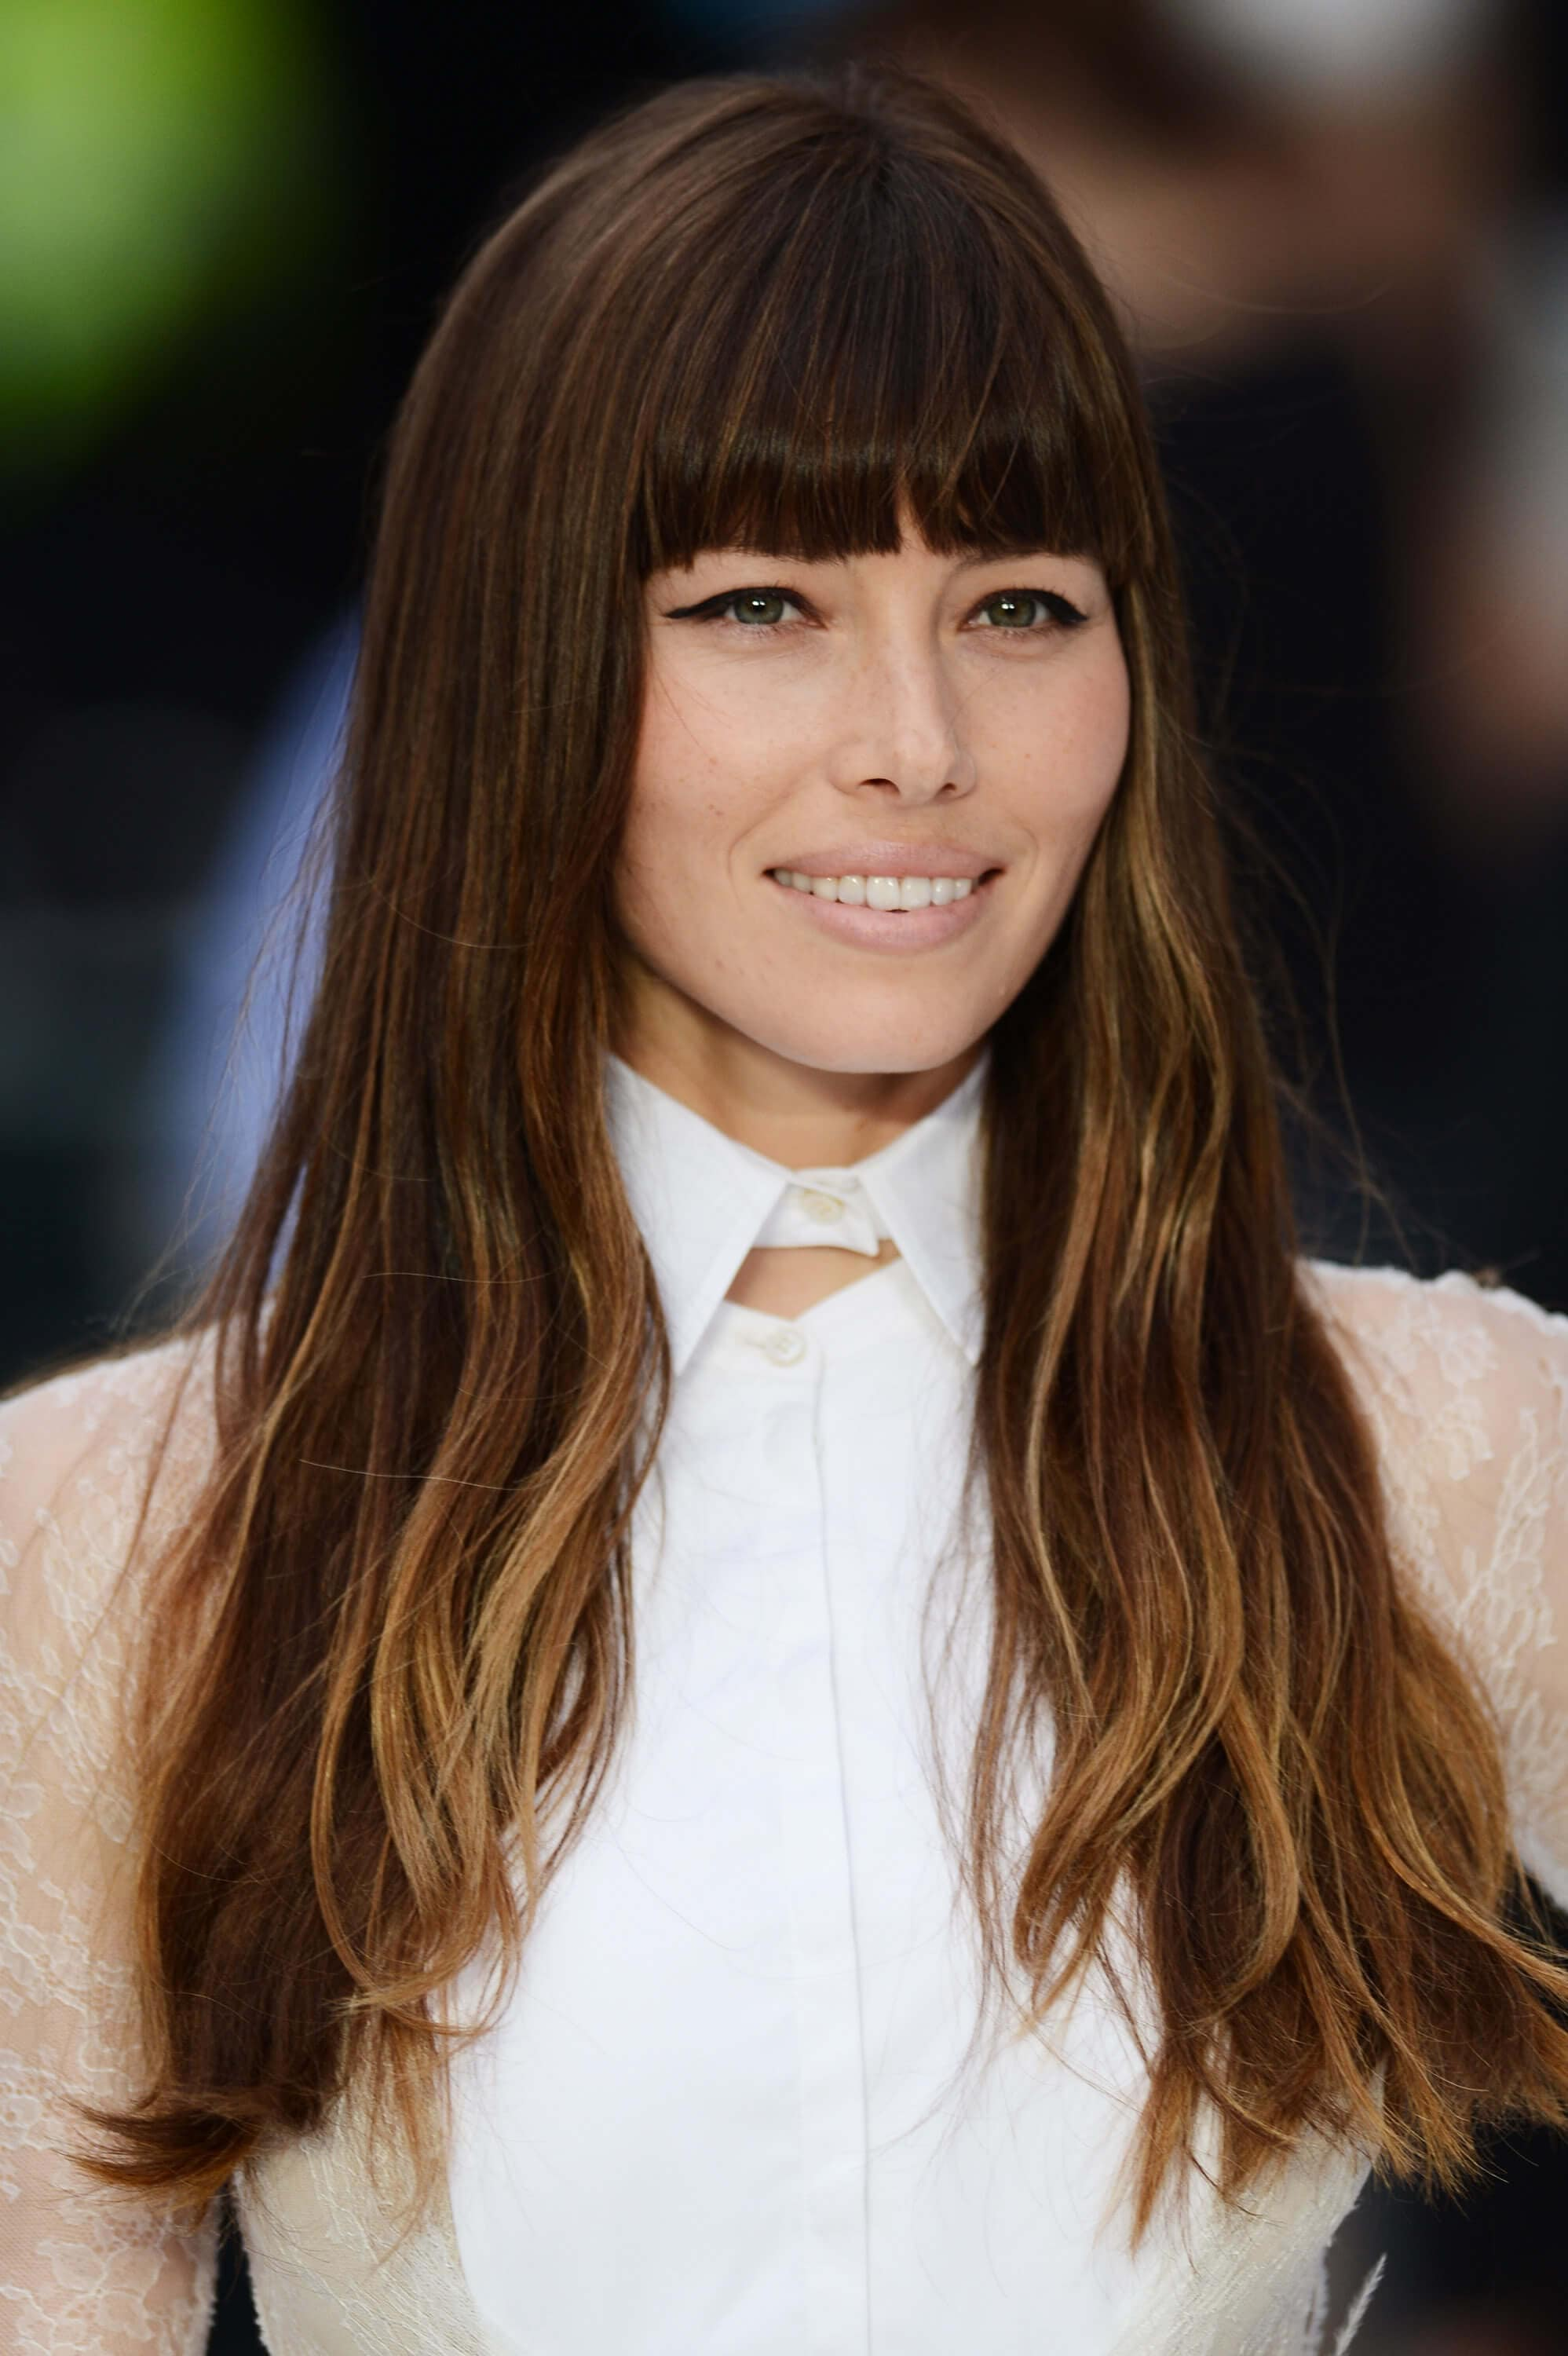 haircut ideas for long hair: Jessica Biel with soft layers and blunt fringe